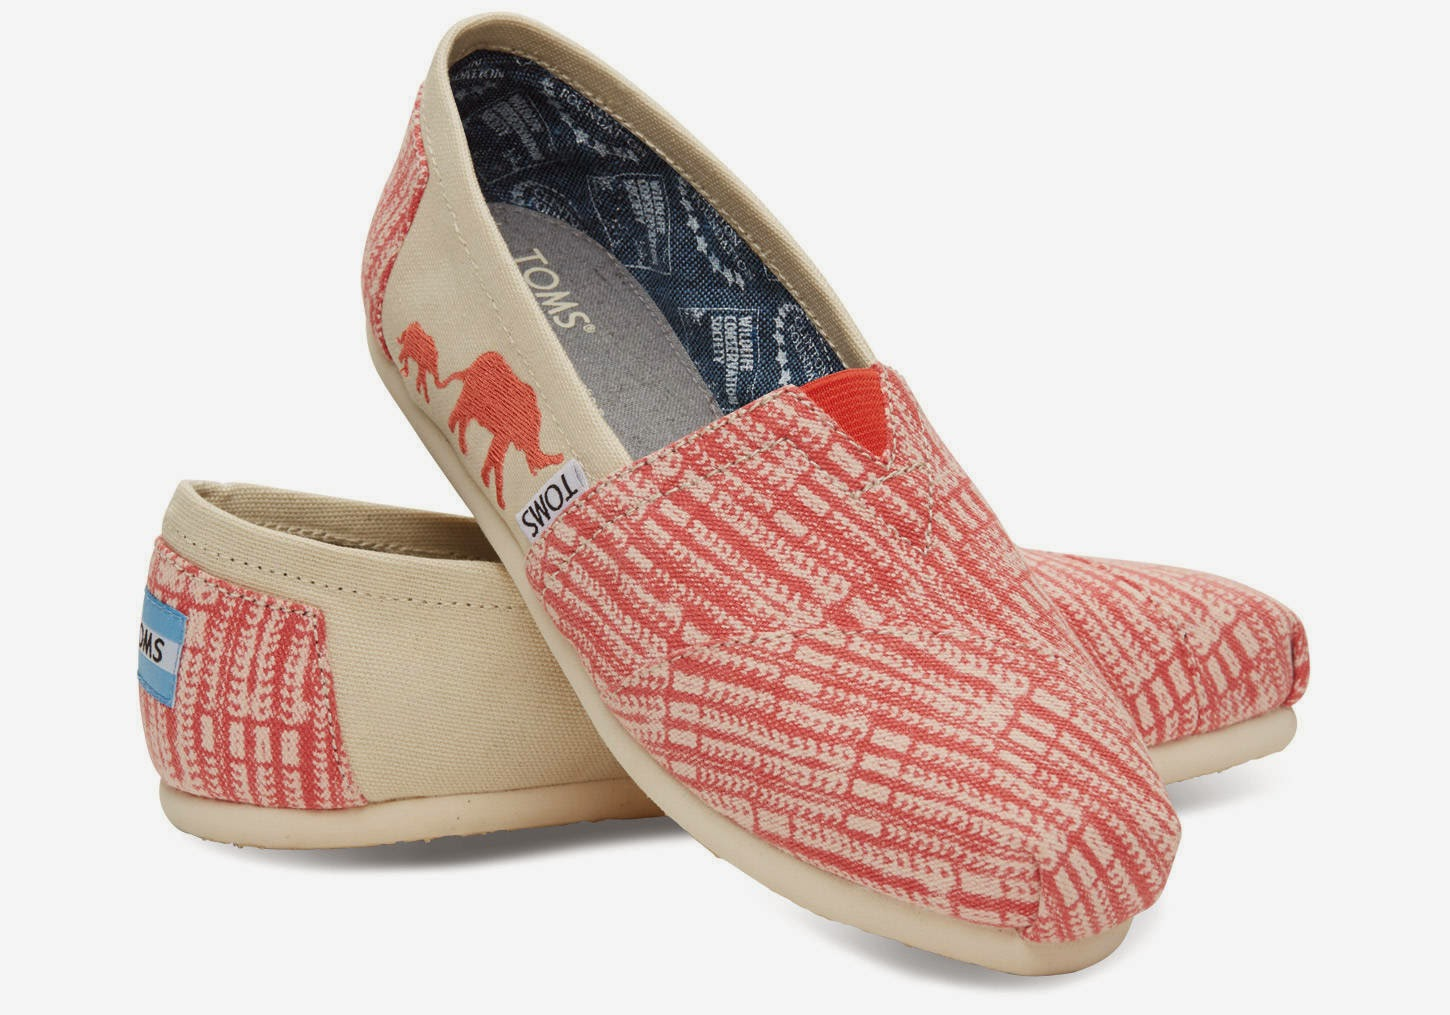 Toms holiday gift guide